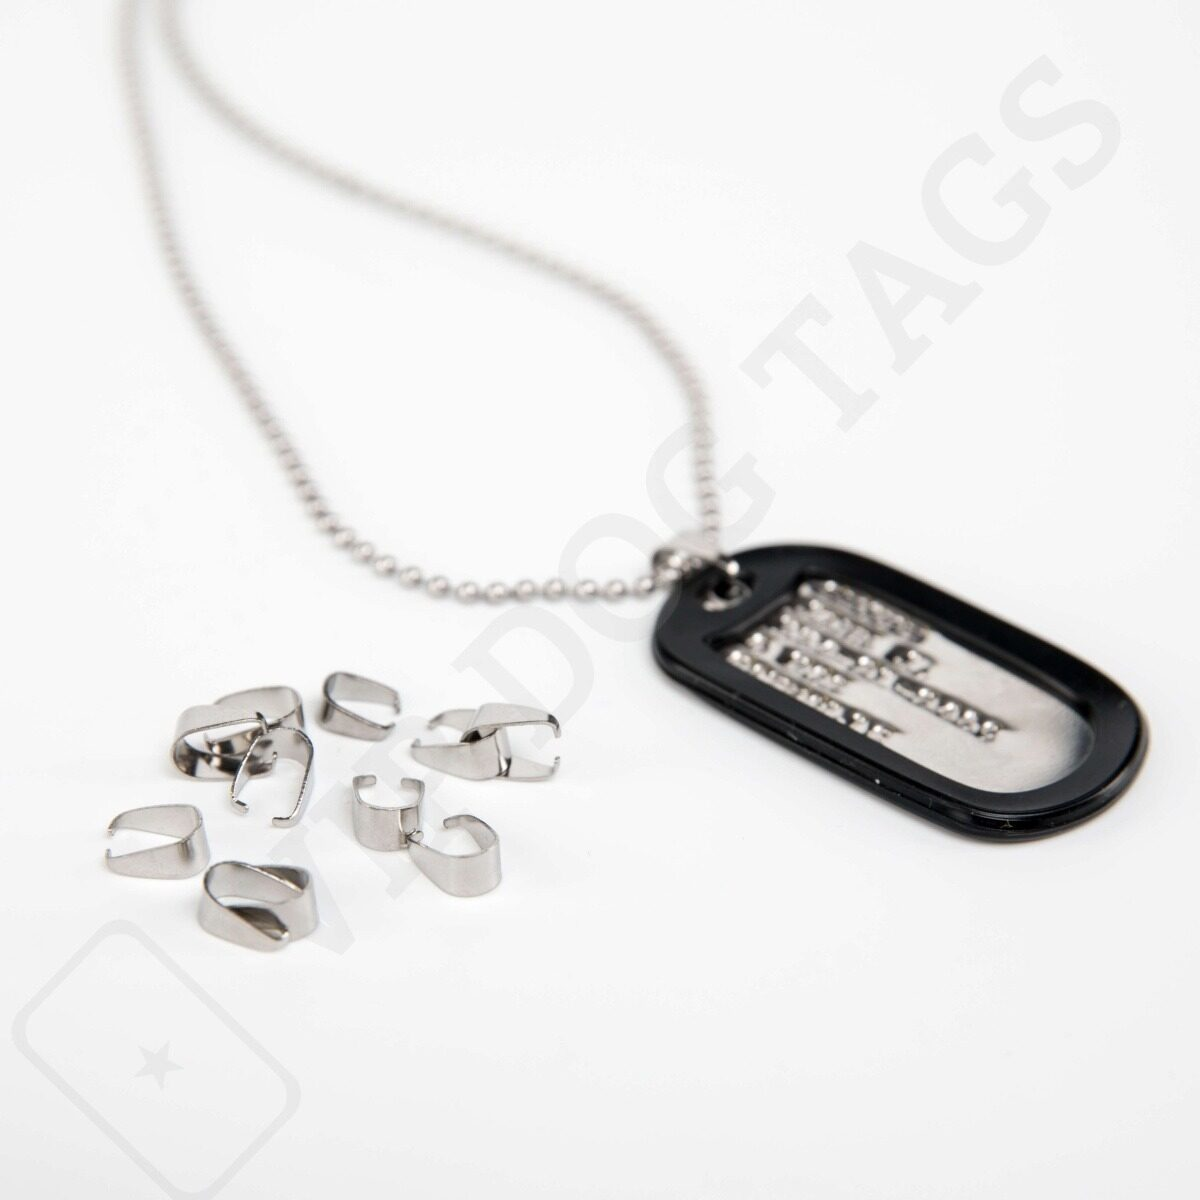 holder_for_dogtags_ballchain